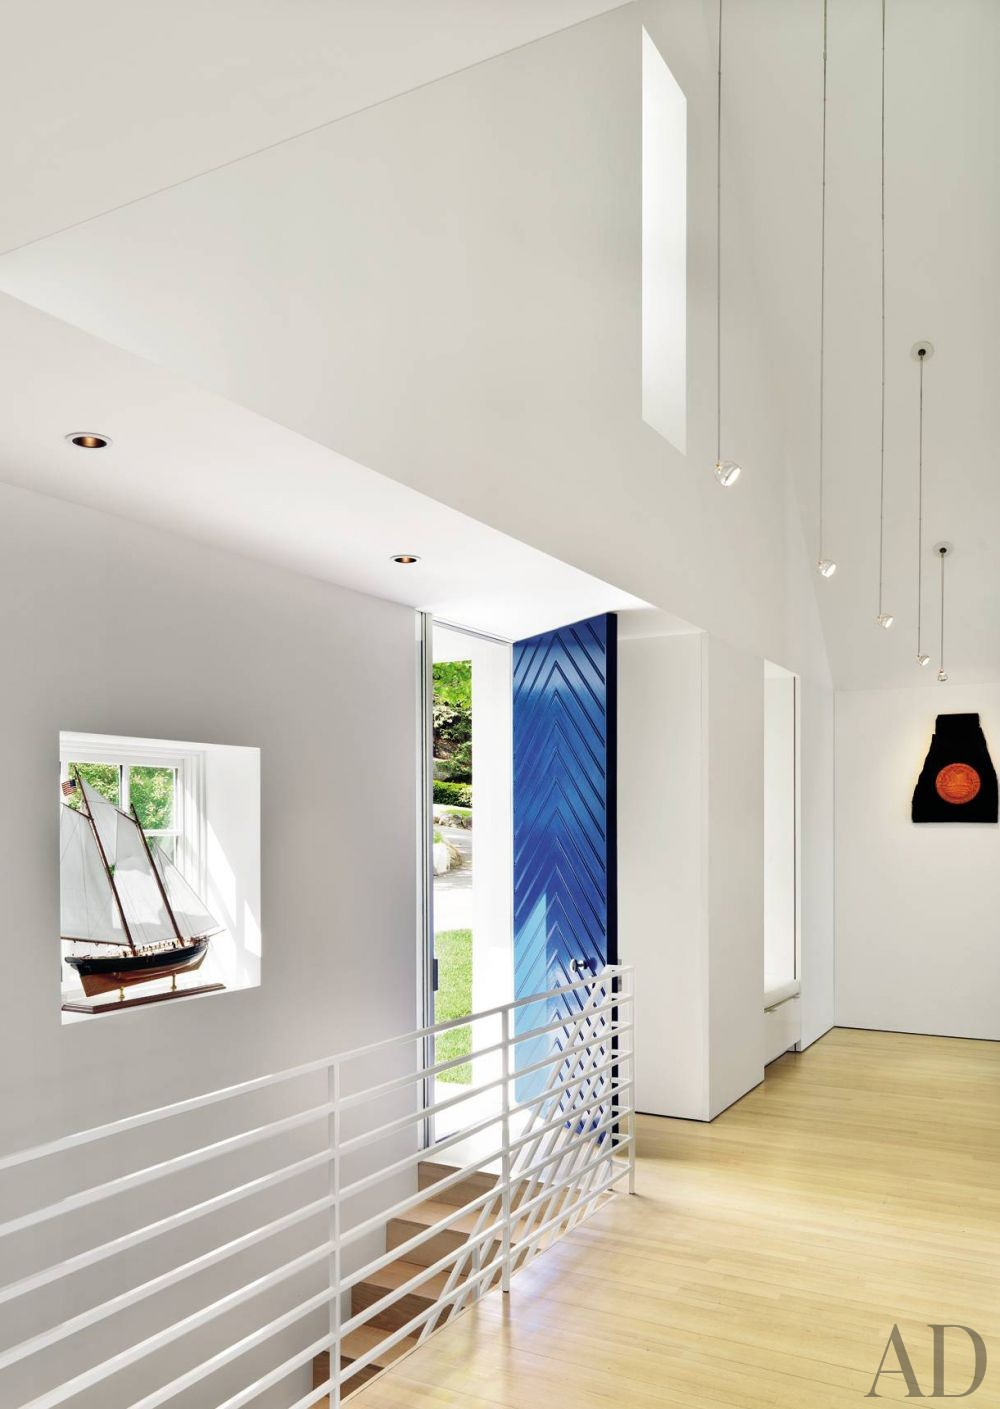 Beach Entrance Hall by Jacobsen Architecture and Jacobsen Architecture in Rockport, Maine